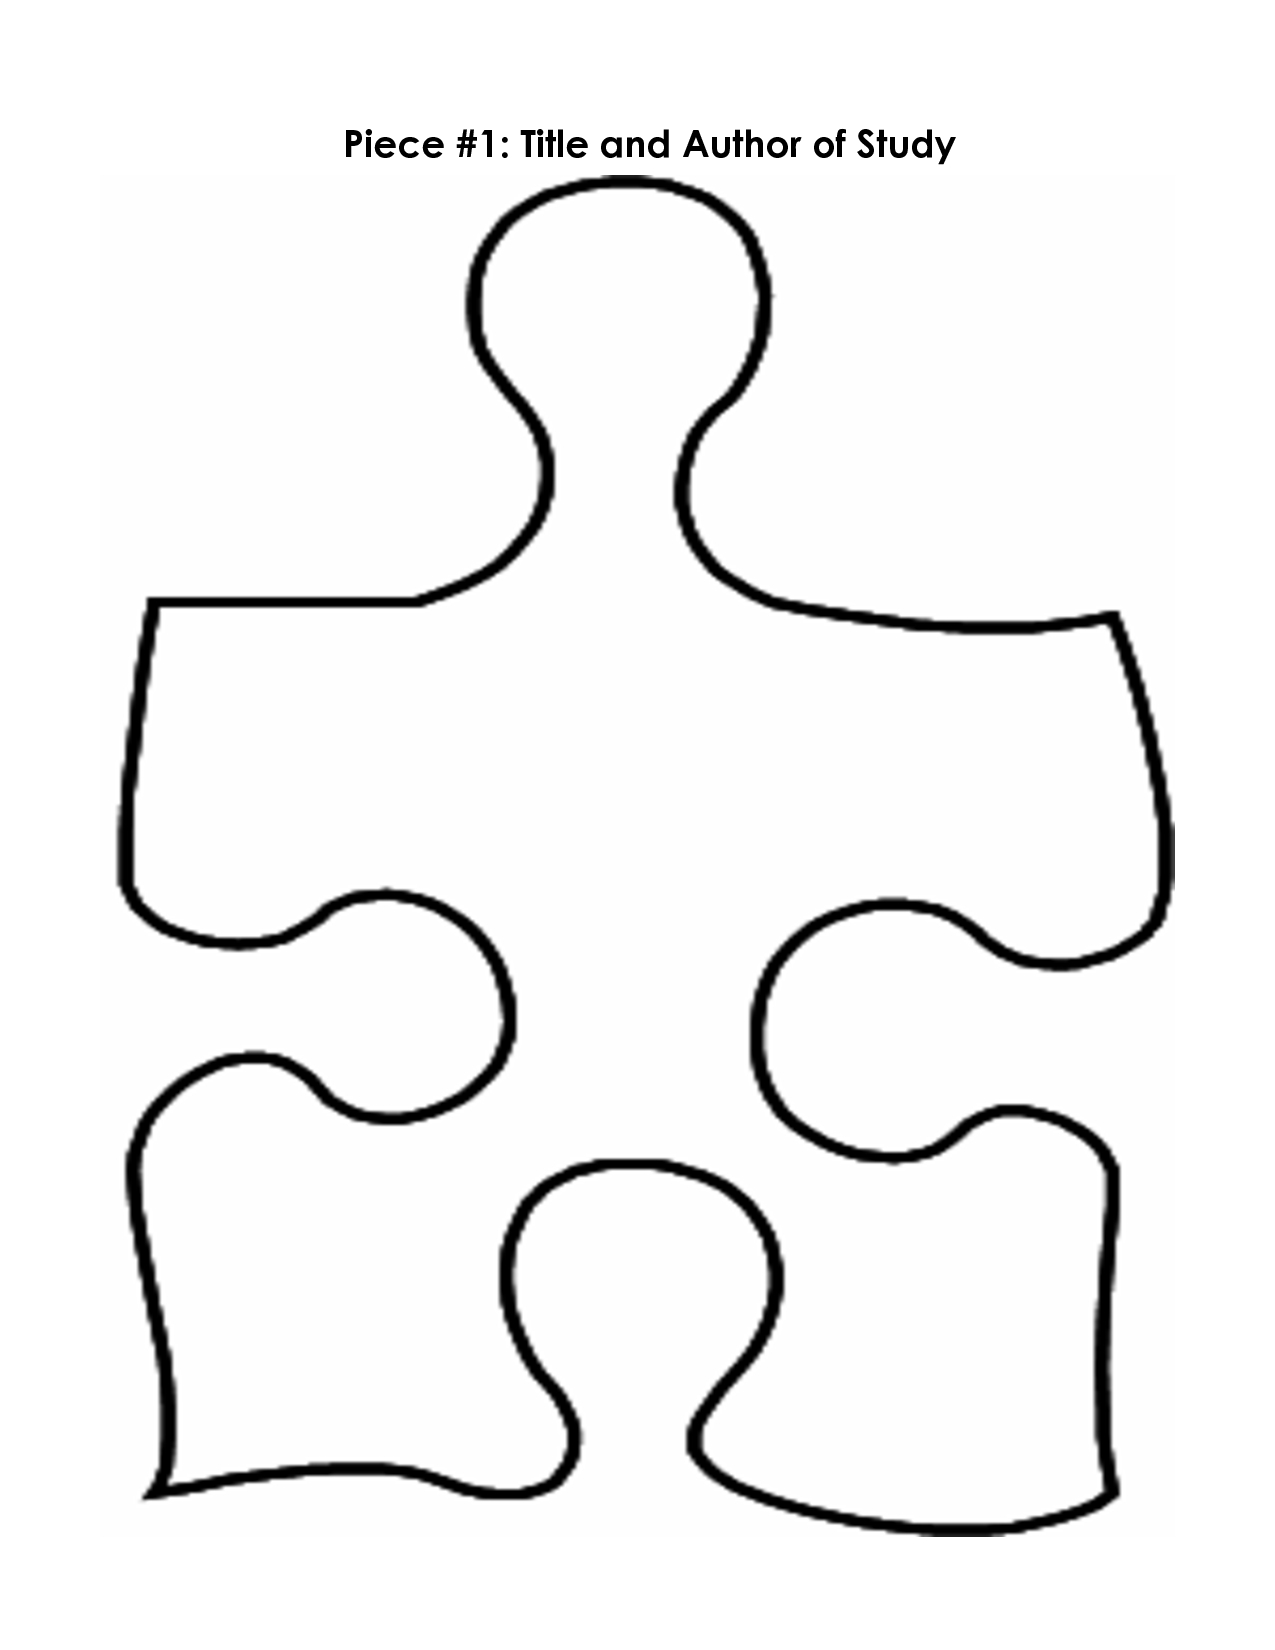 Free Puzzle Pieces Template, Download Free Clip Art, Free Clip Art - Printable Giant Puzzle